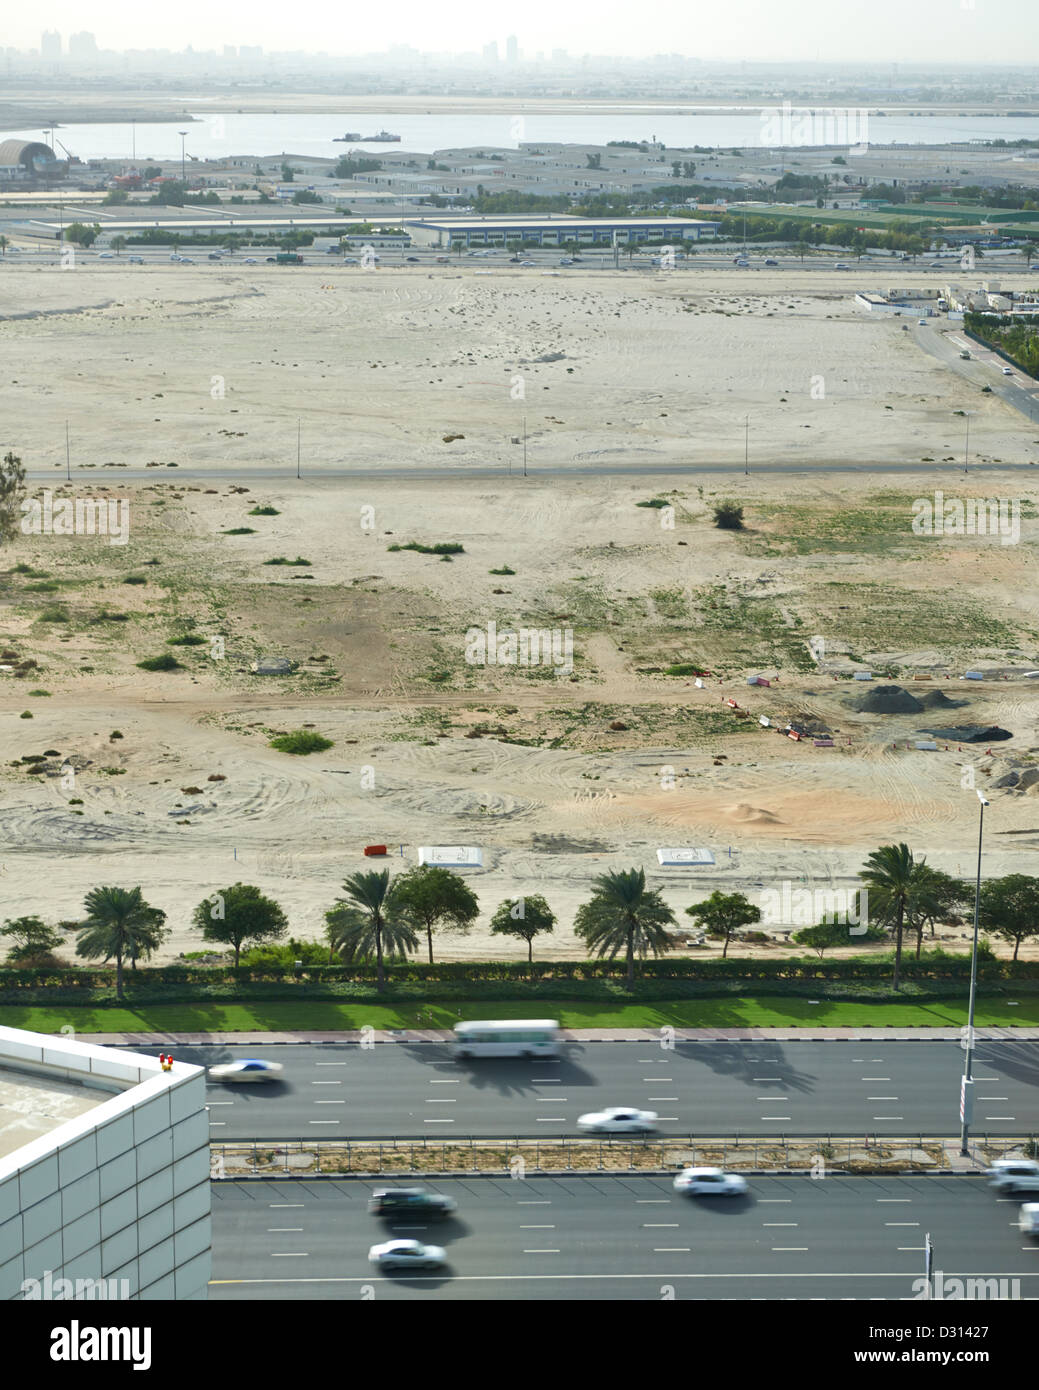 A barren field in Dubai with buzzing traffic nearby - Stock Image